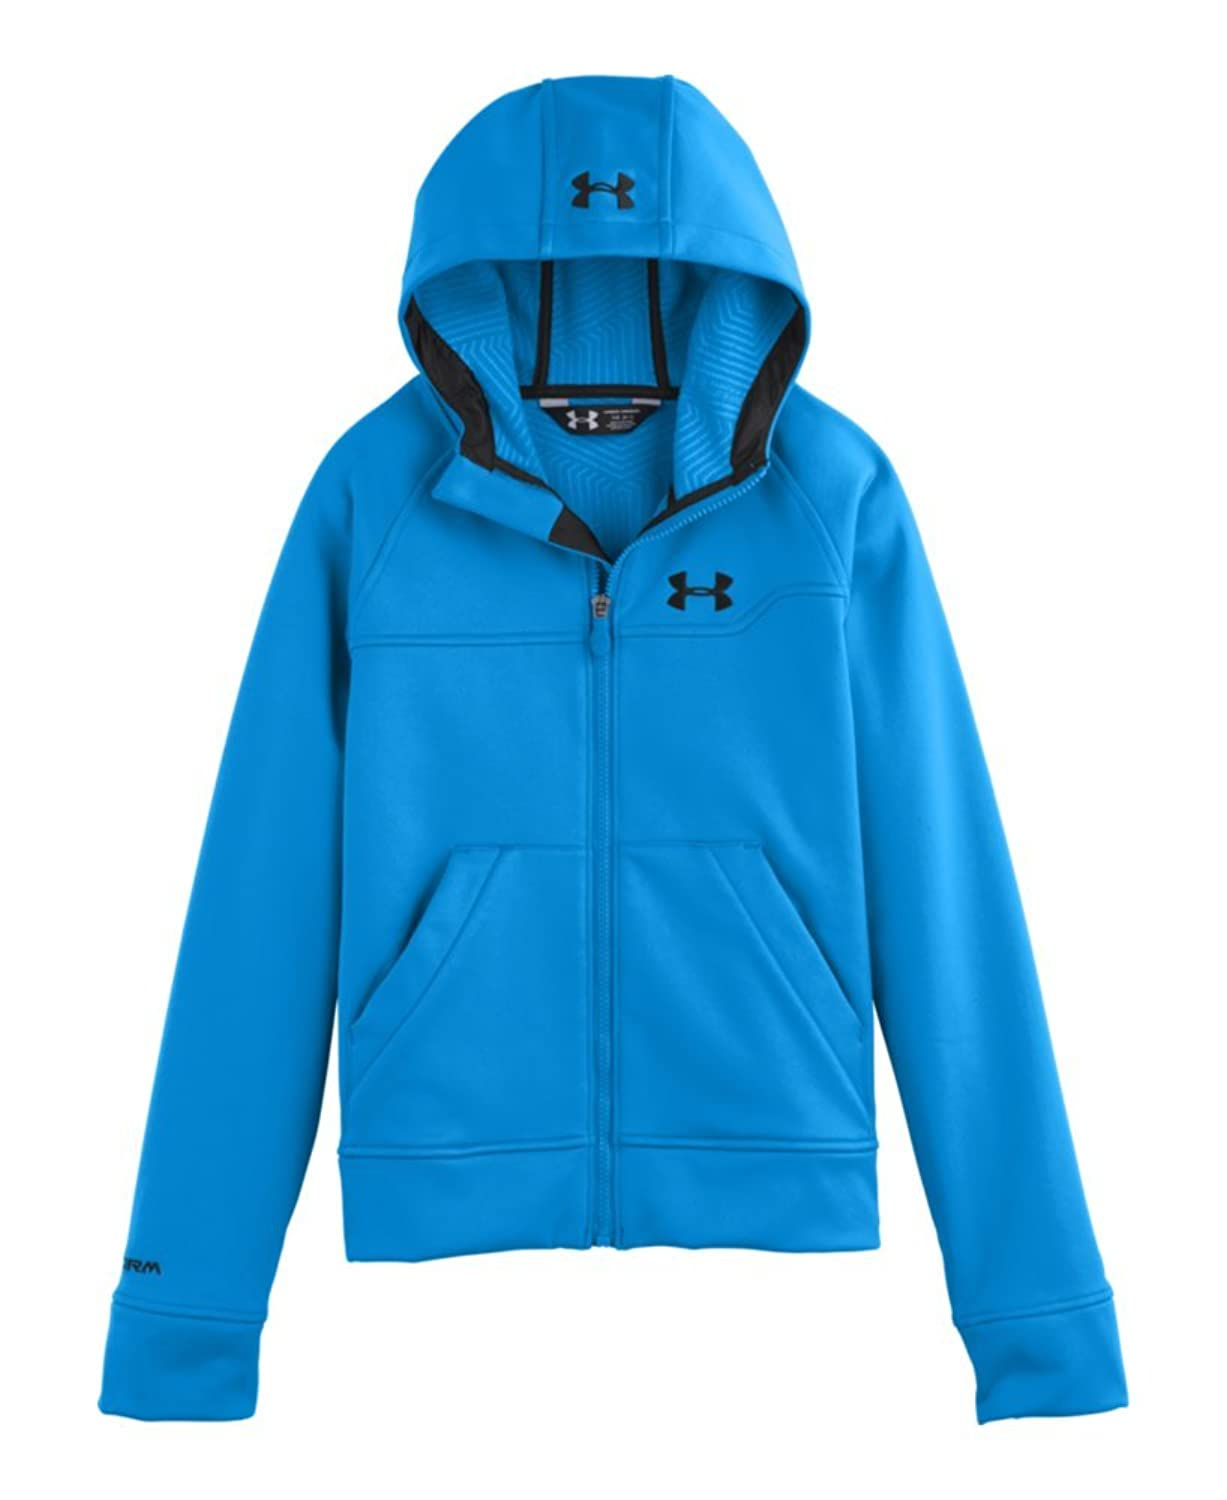 Boys Under Armour Storm Jacket Under Armour Boys' ua Storm